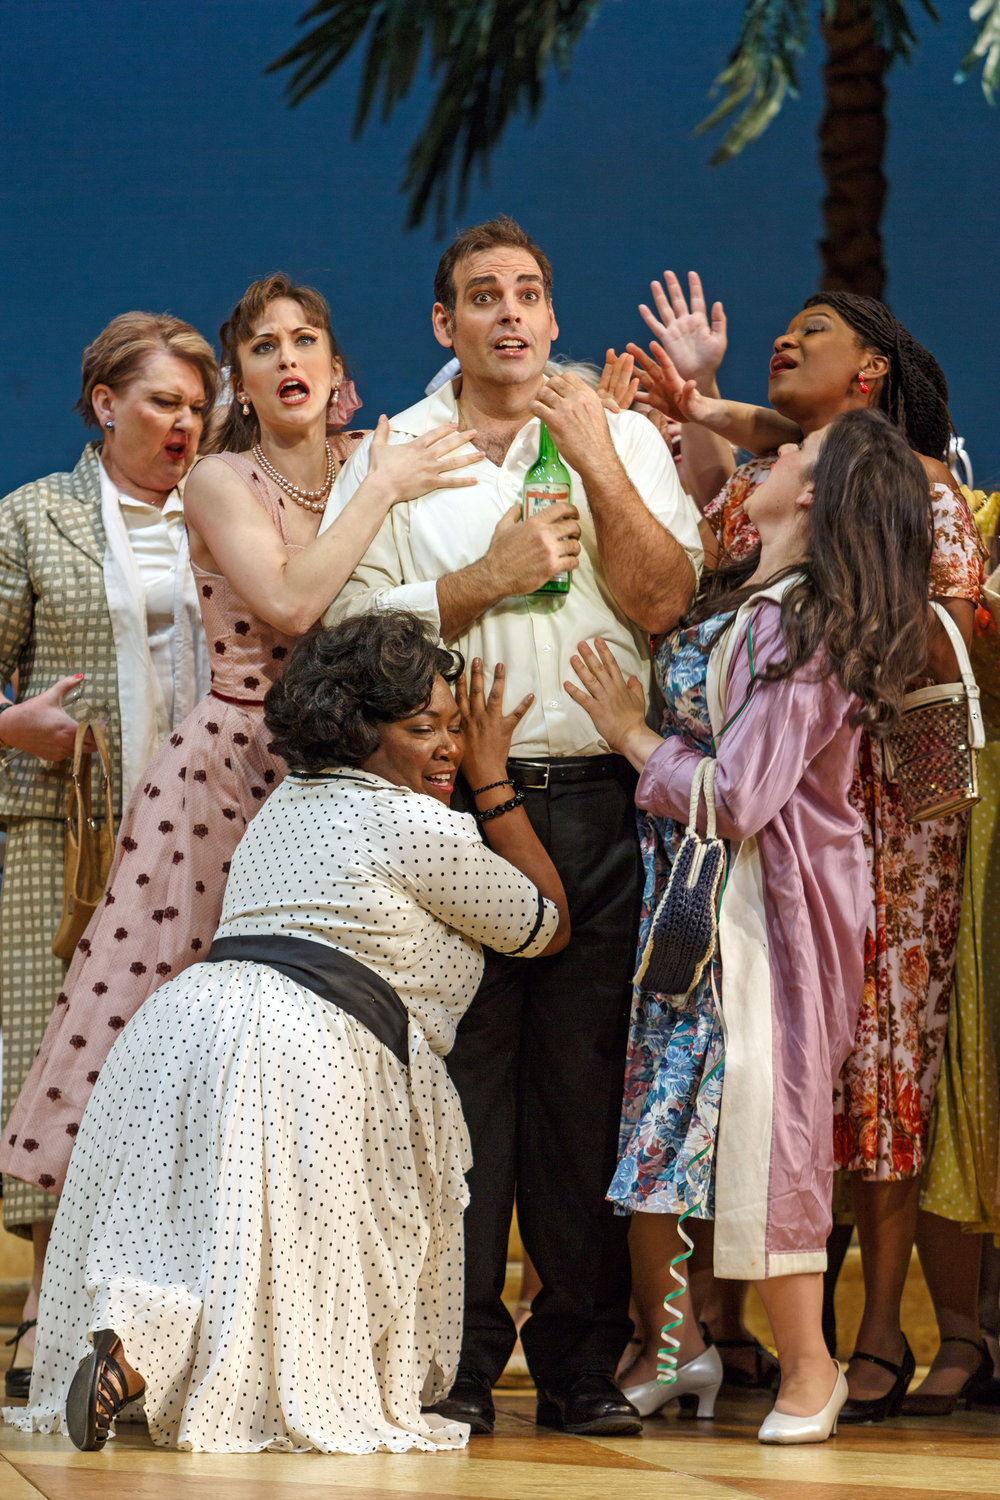 Giannetta (Shannon Jennings) and women fawn over Nemorino (Dmitri Pittas), who assumes the Elixir is working